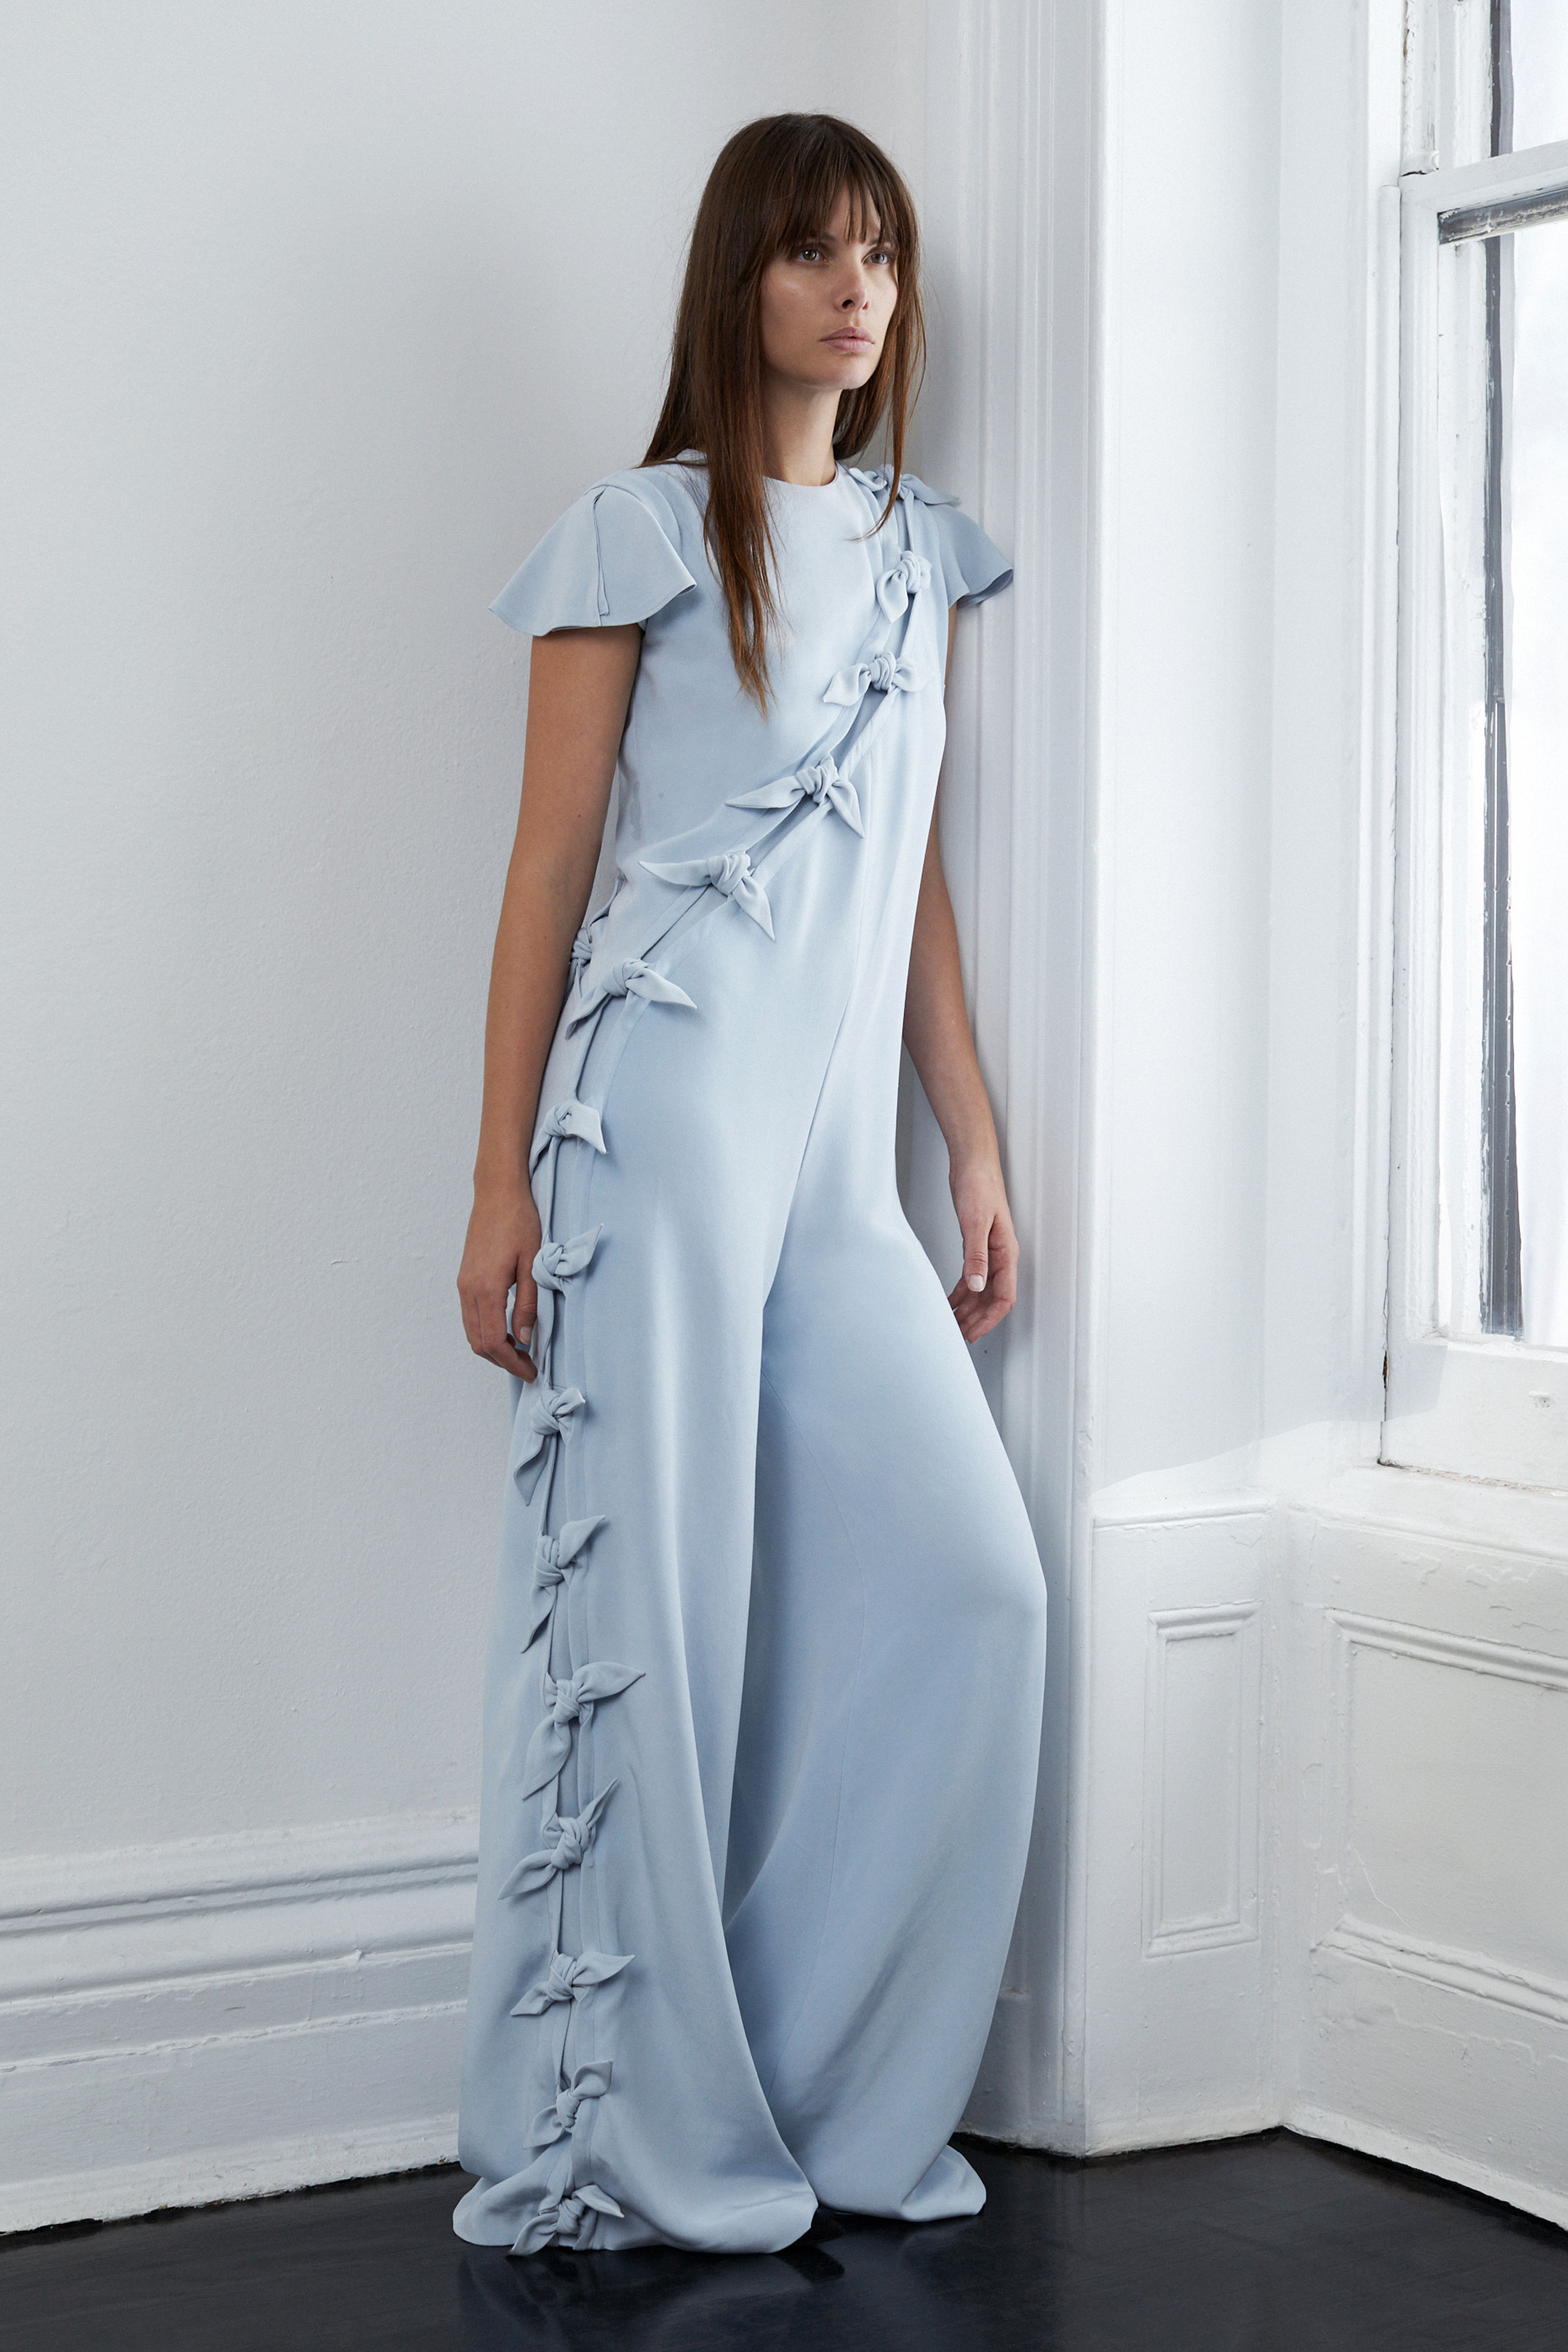 lein fall 2018 wedding dress blue jumpsuit short sleeves ties